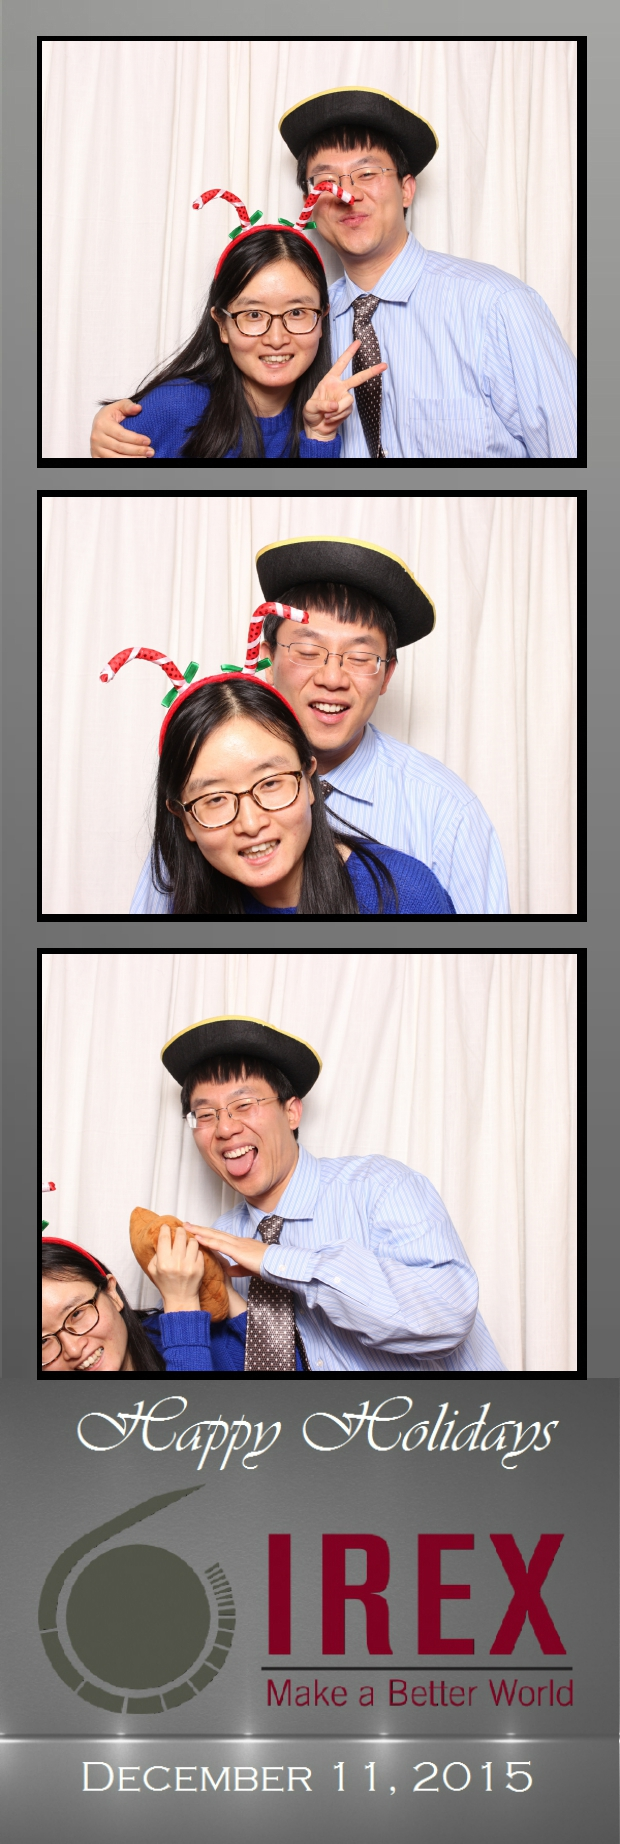 Guest House Events Photo Booth Strips IREX (94).jpg